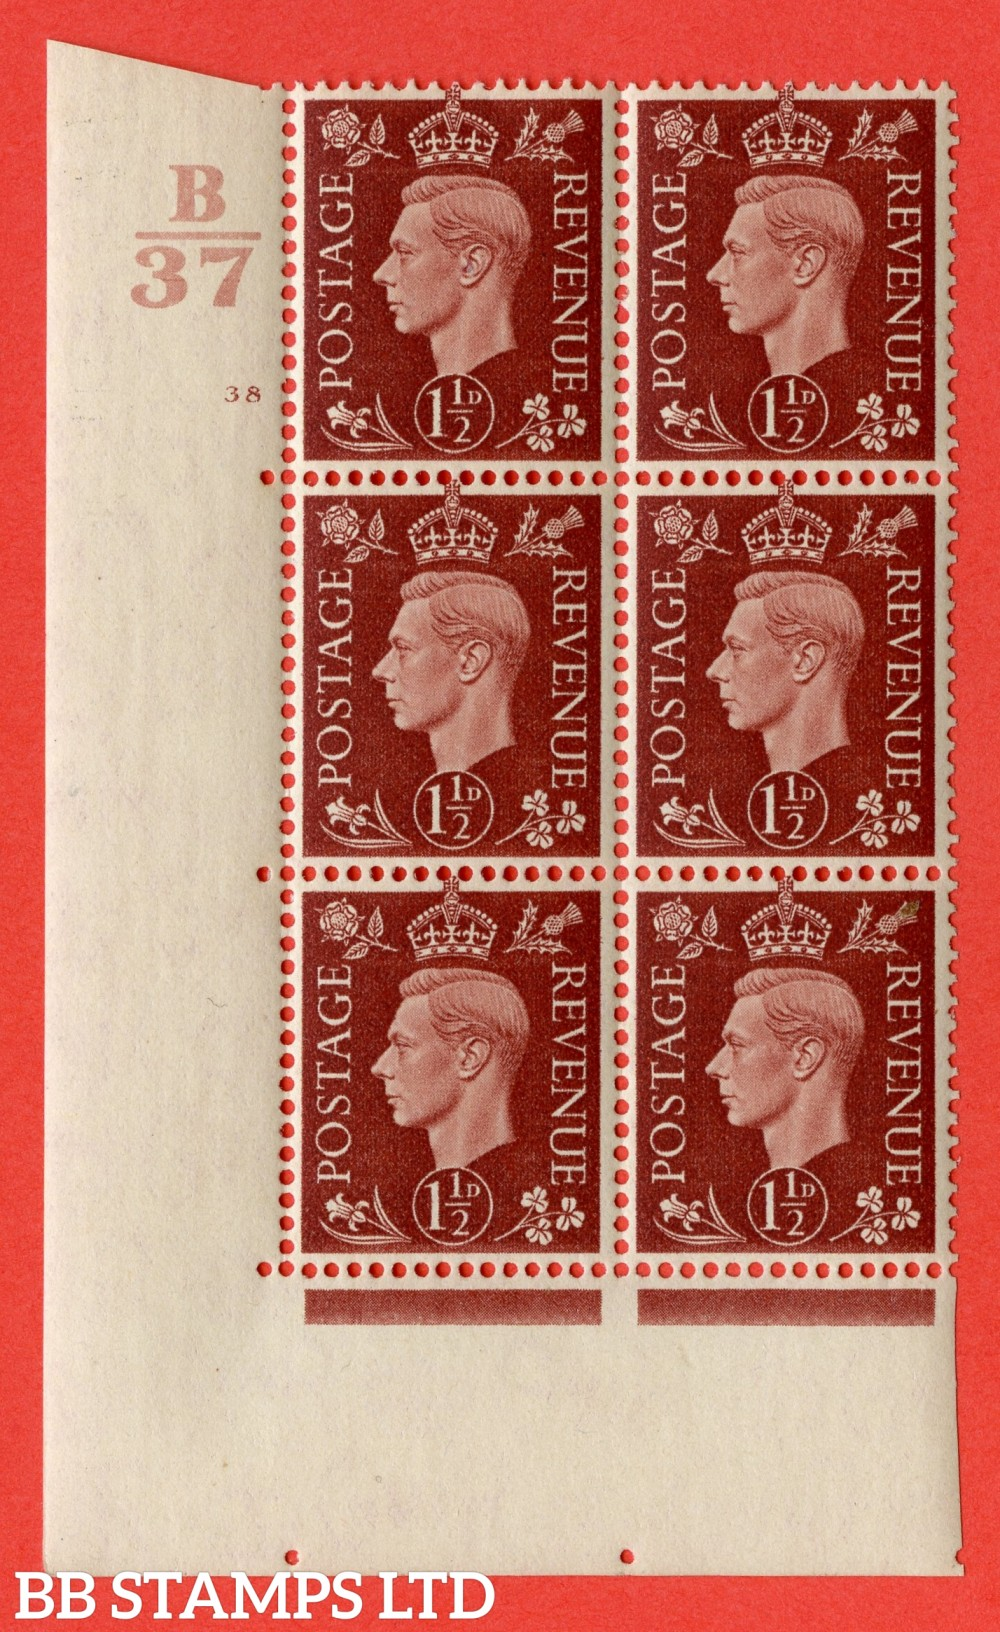 """SG. 464. Q7. 1½d Red-Brown. A fine lightly mounted mint """" Control B37 cylinder 38 no dot """" control block of 6 with perf type 5 E/I. with marginal rule."""